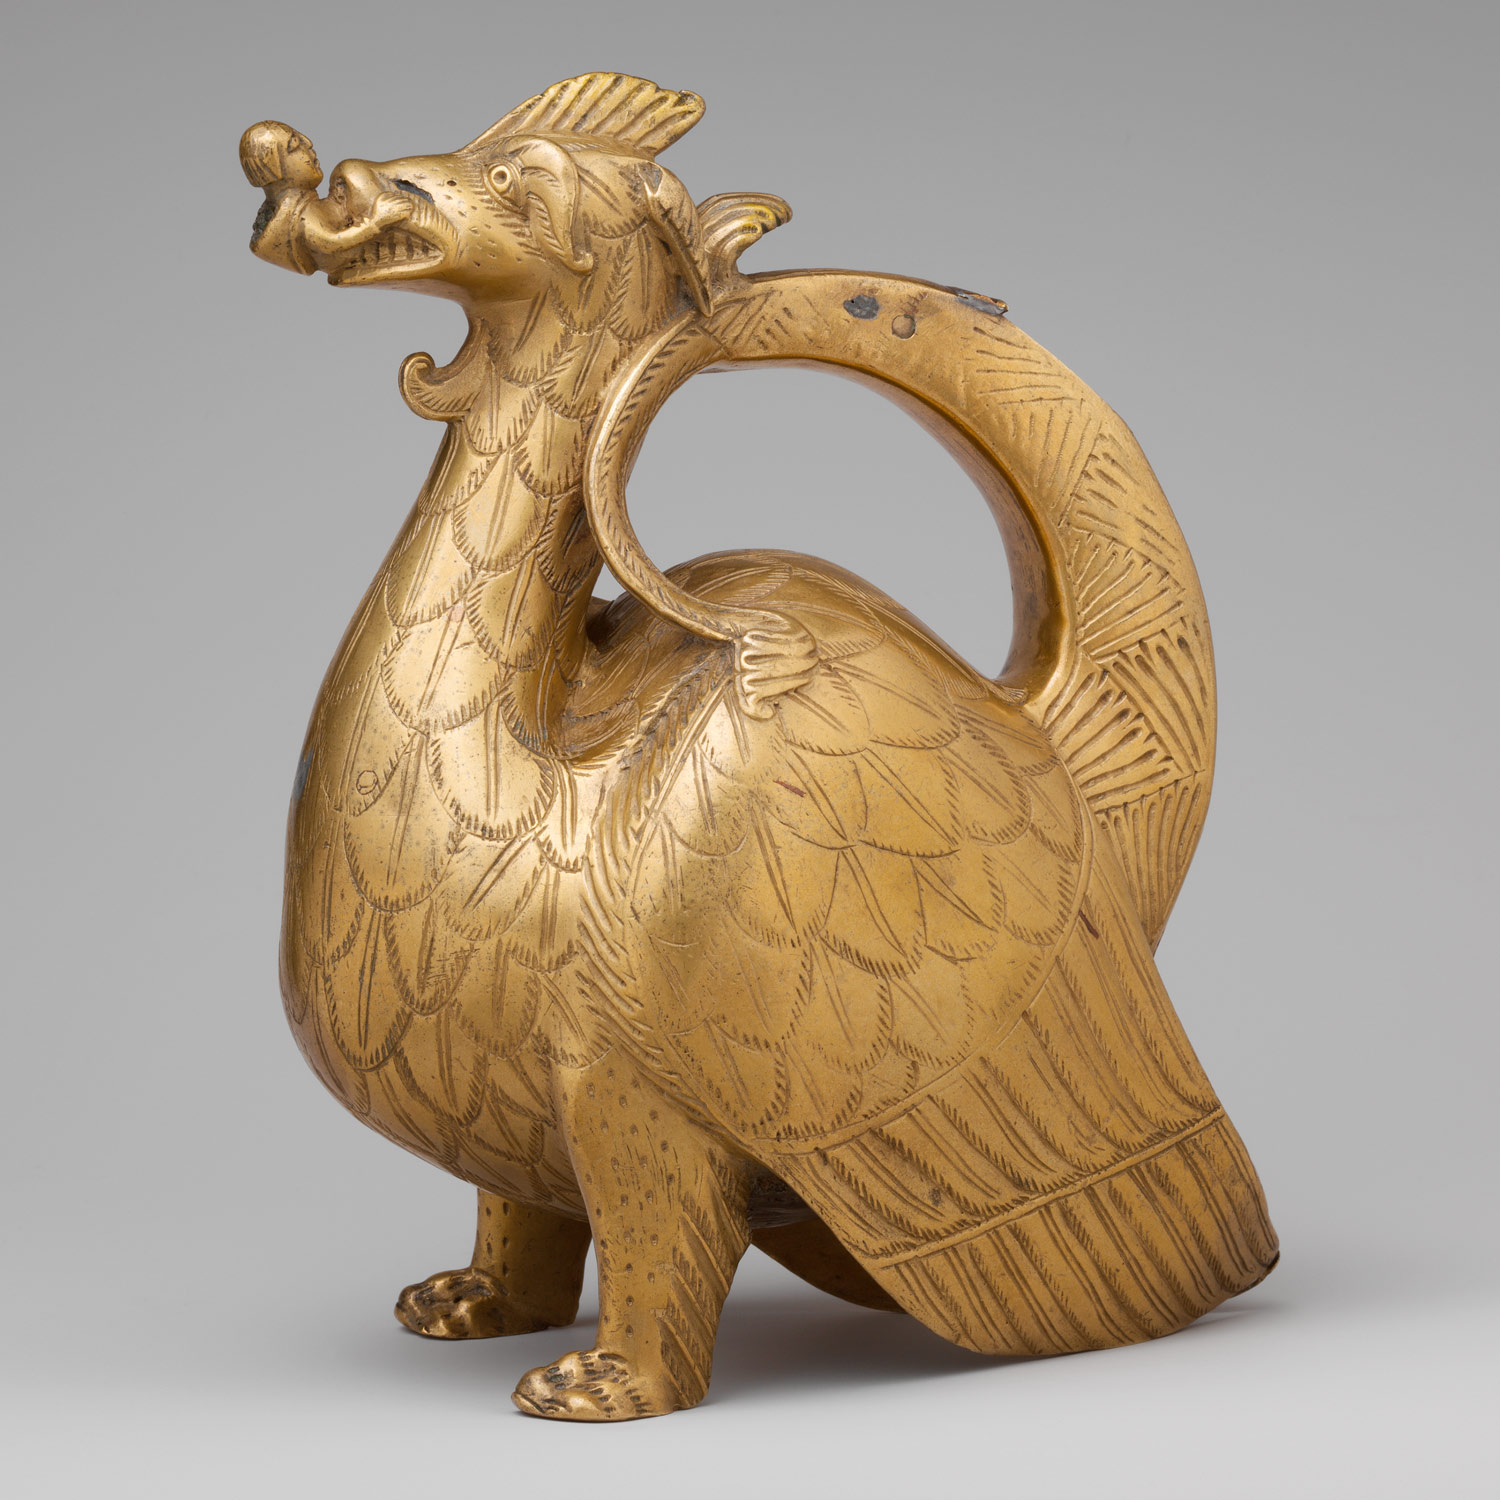 Medieval aquamanilia essay heilbrunn timeline of art history aquamanile in the form of a dragon sciox Images